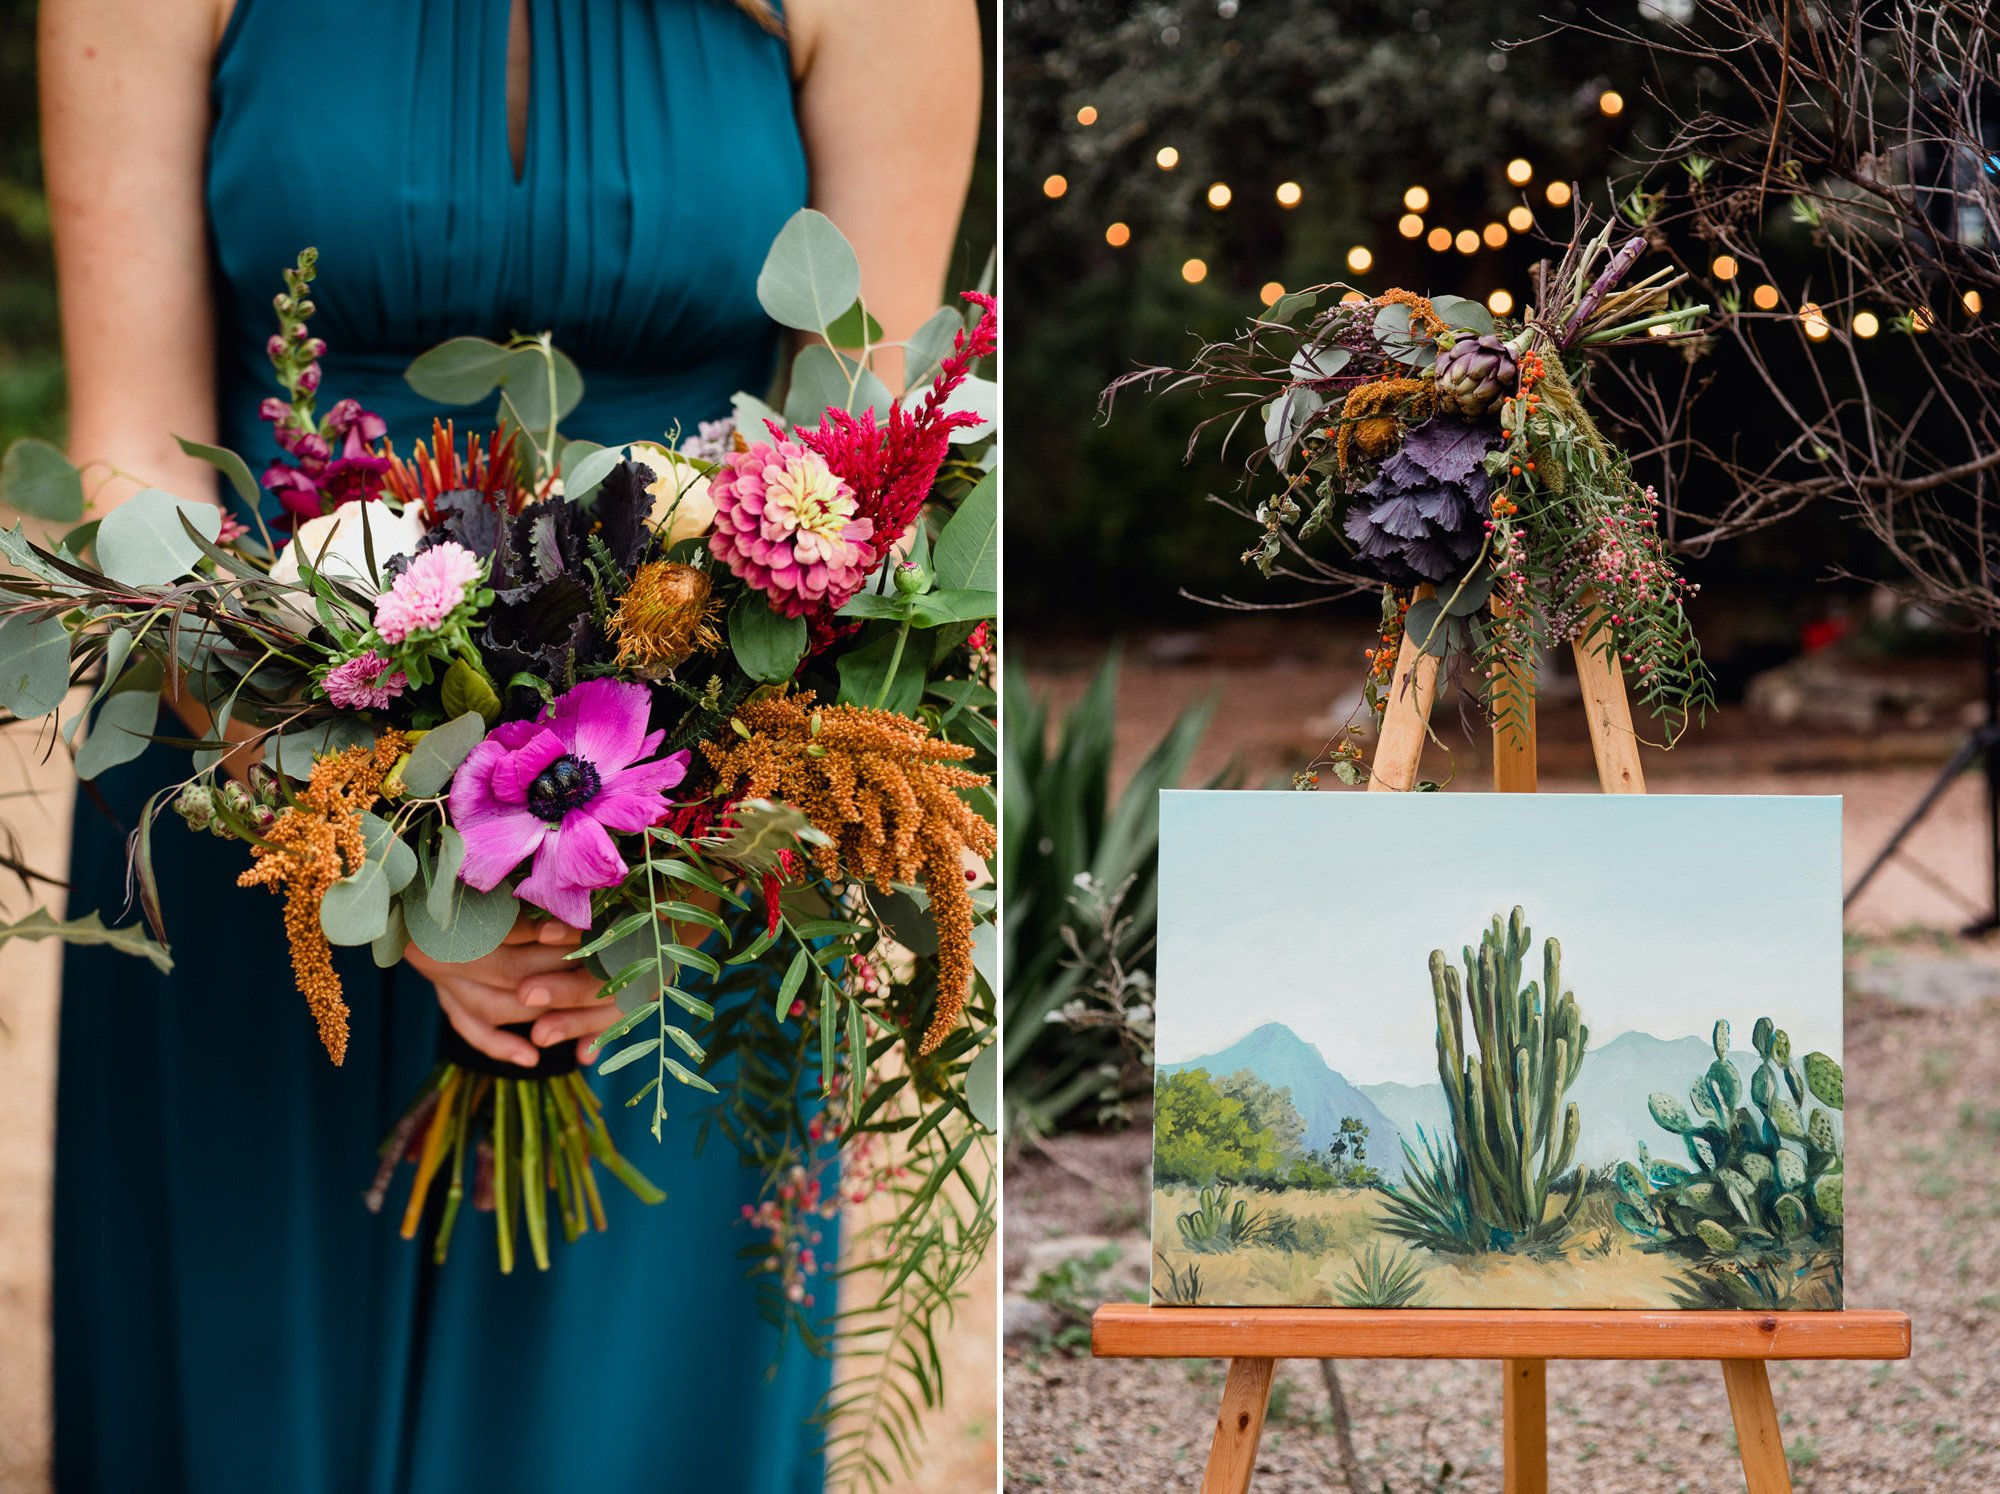 west texas inspired details of flowers and a painting at wedding at the greenhouse at driftwood, visual lyrics artistry florals